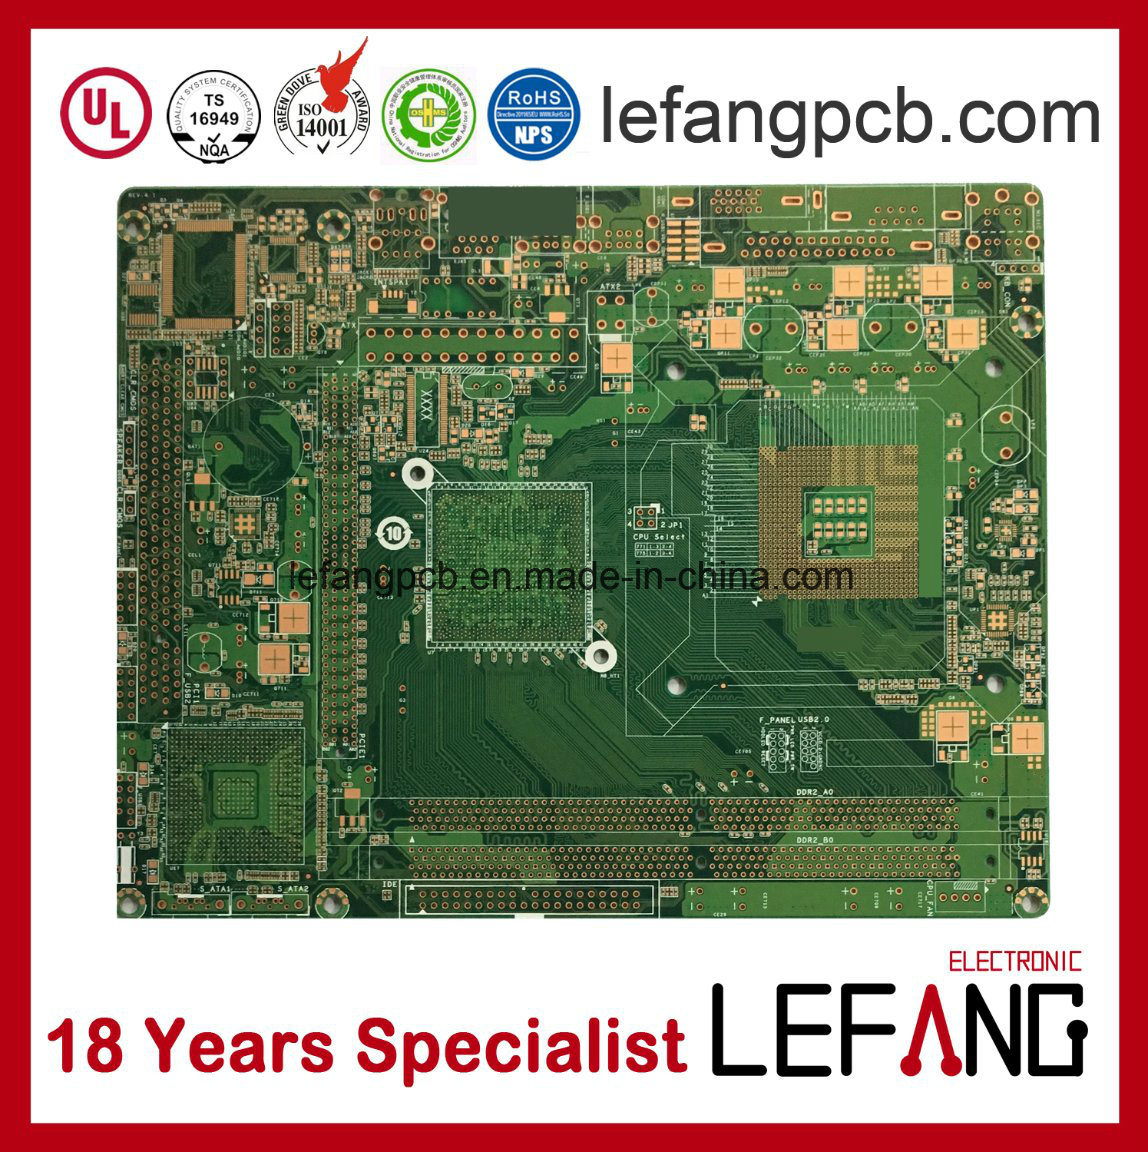 china shenzhen pcb design pcb layout printed circuit board china